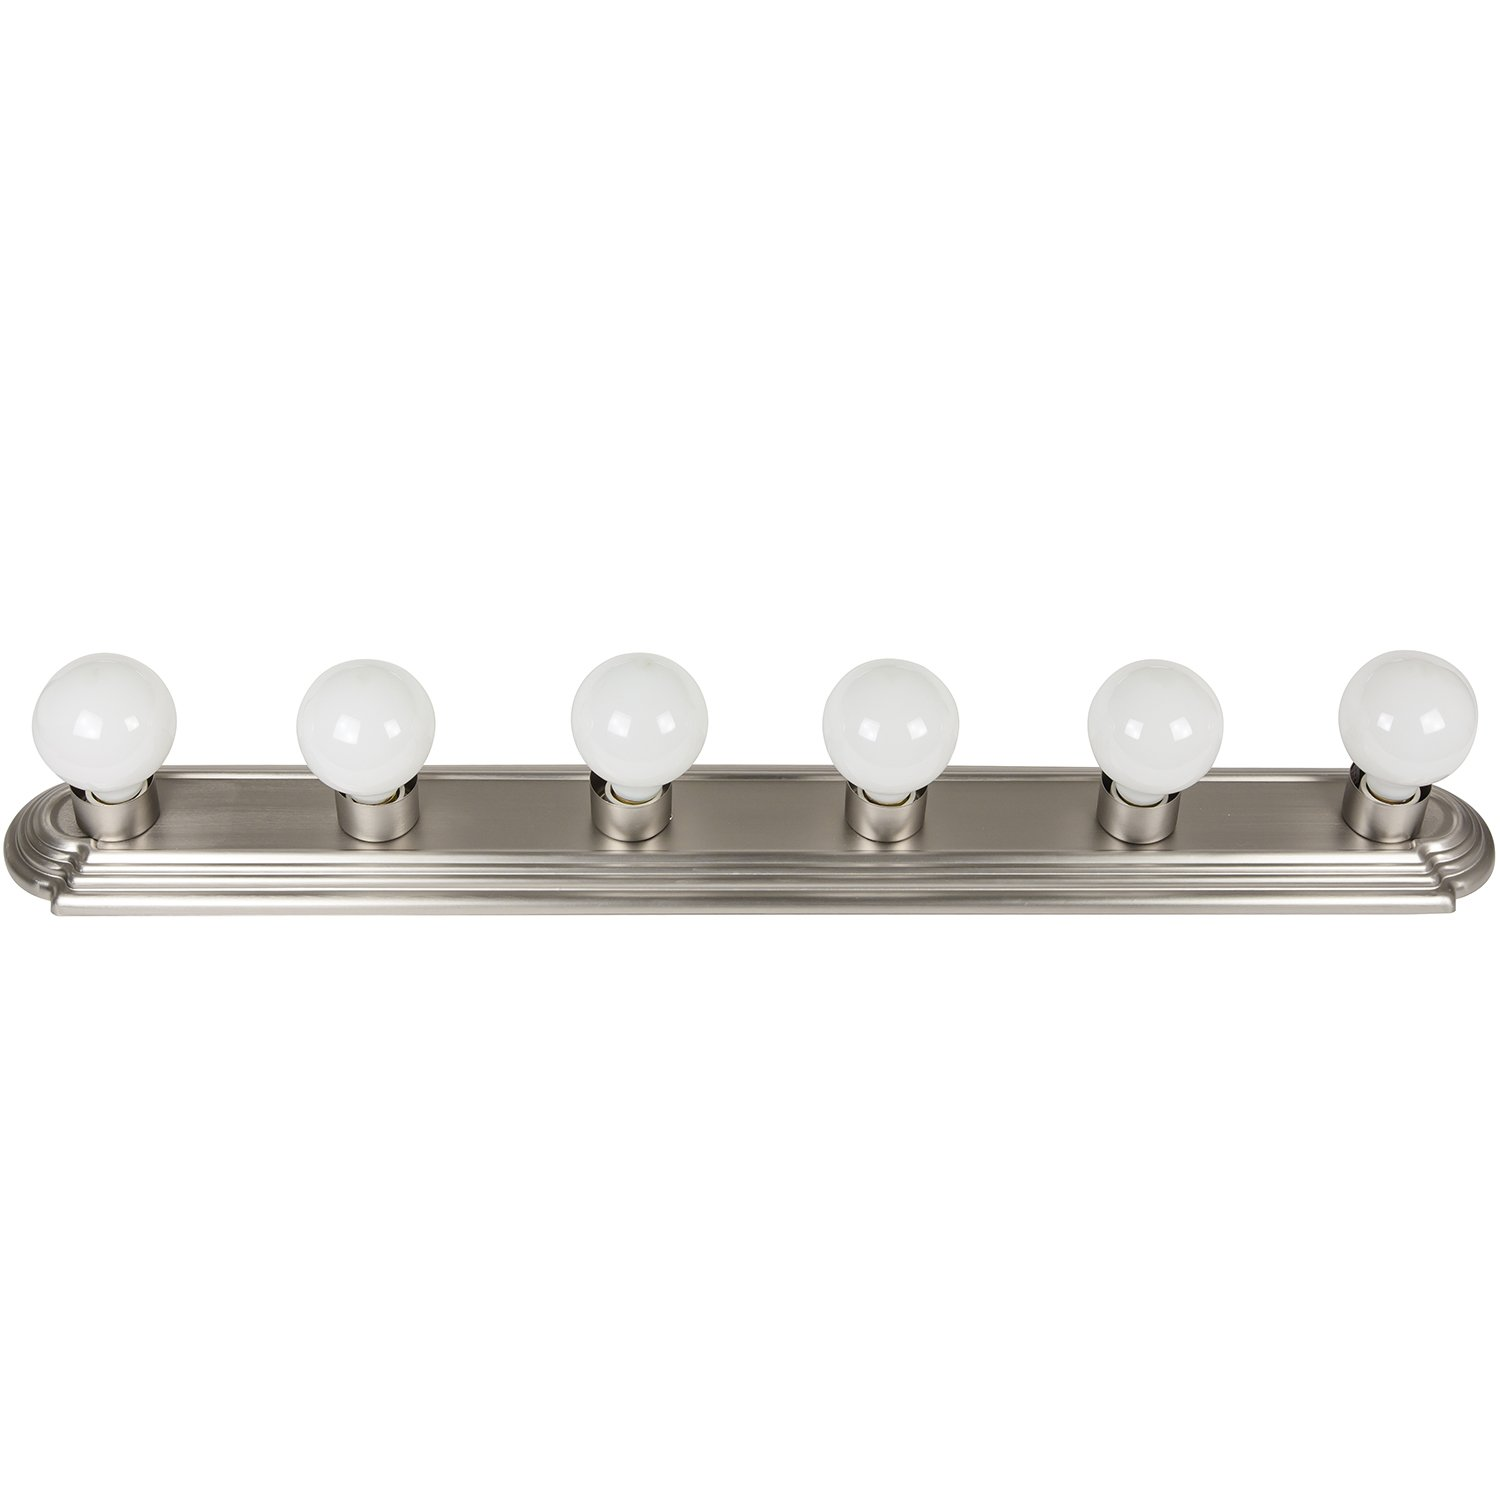 Sunlite 45200-SU Bathroom Vanity Light Fixture 36'' Globe Style Wall Fixture 6 Lights Brushed Nickel Finish